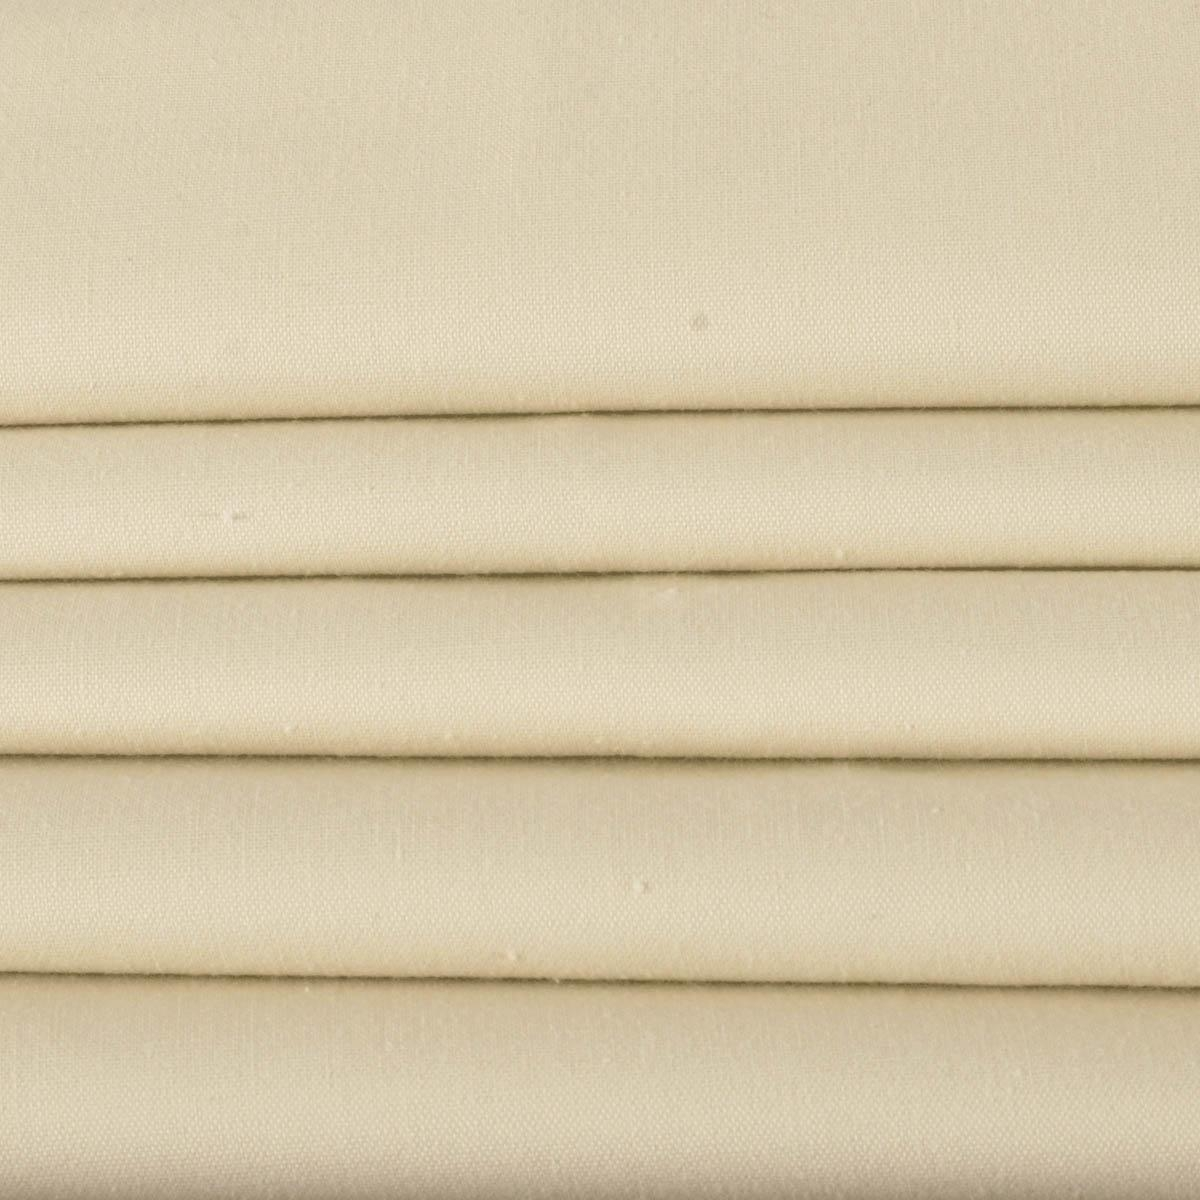 White 54 Supersoft Blackout Lining Free Uk Delivery Terrys Within Blackout Lining Fabric For Curtains (View 5 of 15)